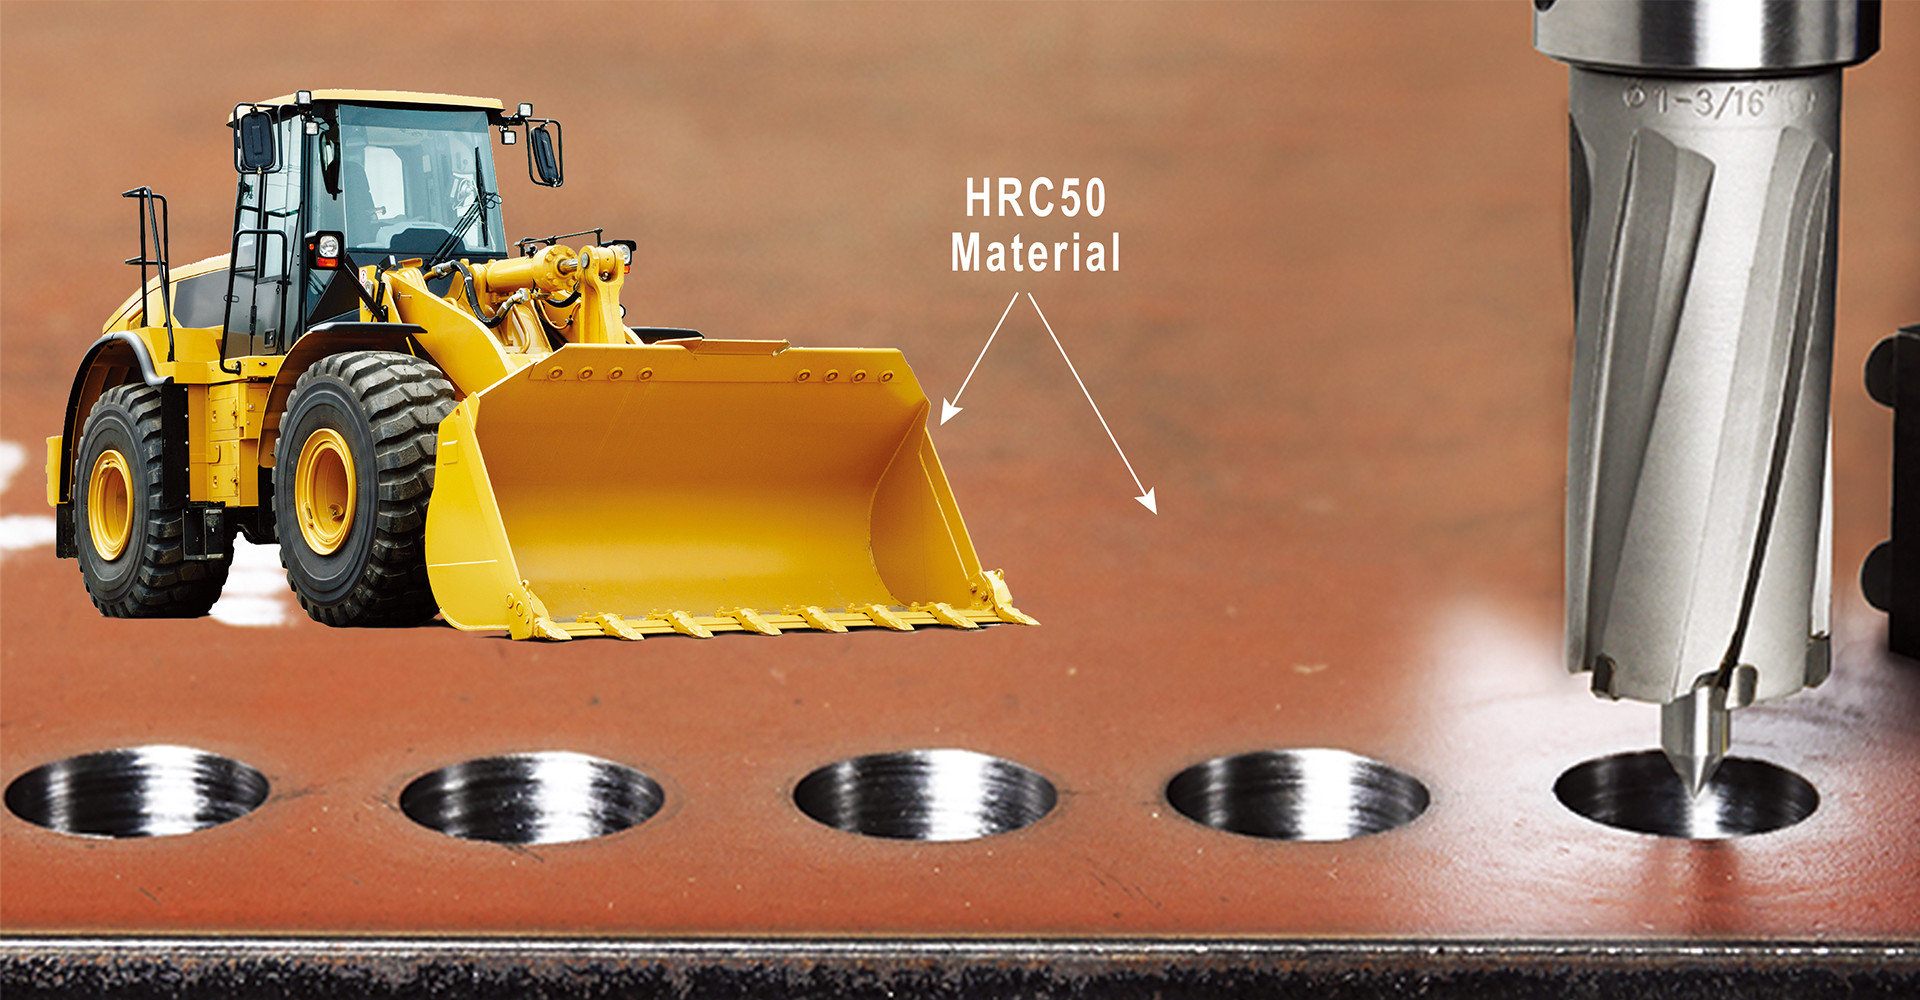 3keego HCR type annular cutters can drill extremely hard metal, such as excavator buckets or even military tanks.